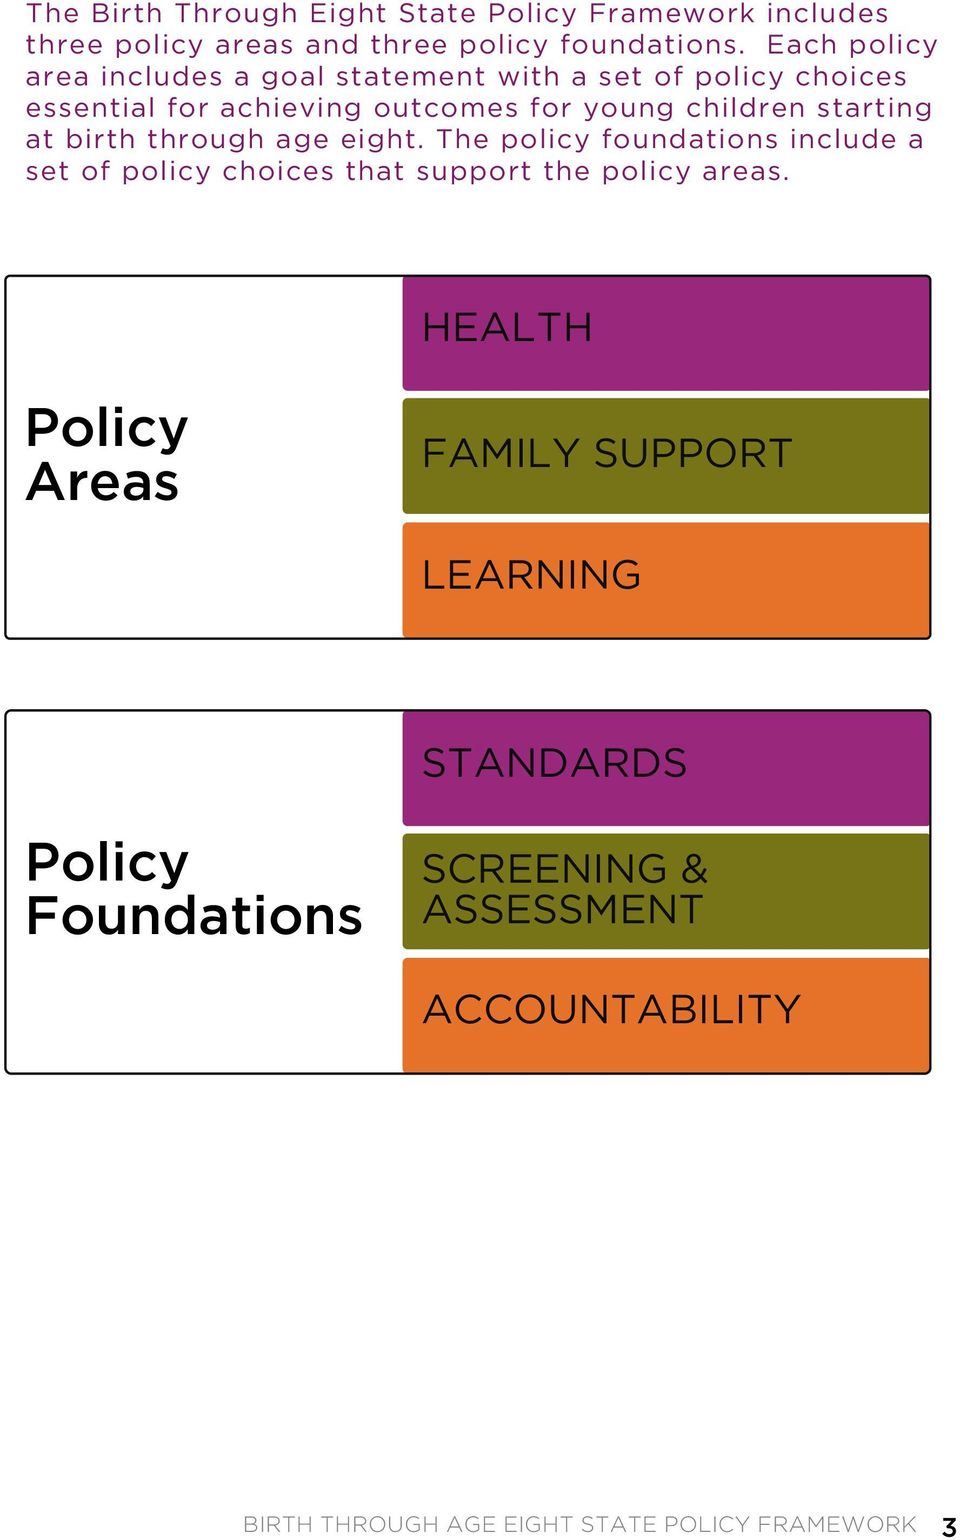 starting at birth through age eight. The policy foundations include a set of policy choices that support the policy areas.